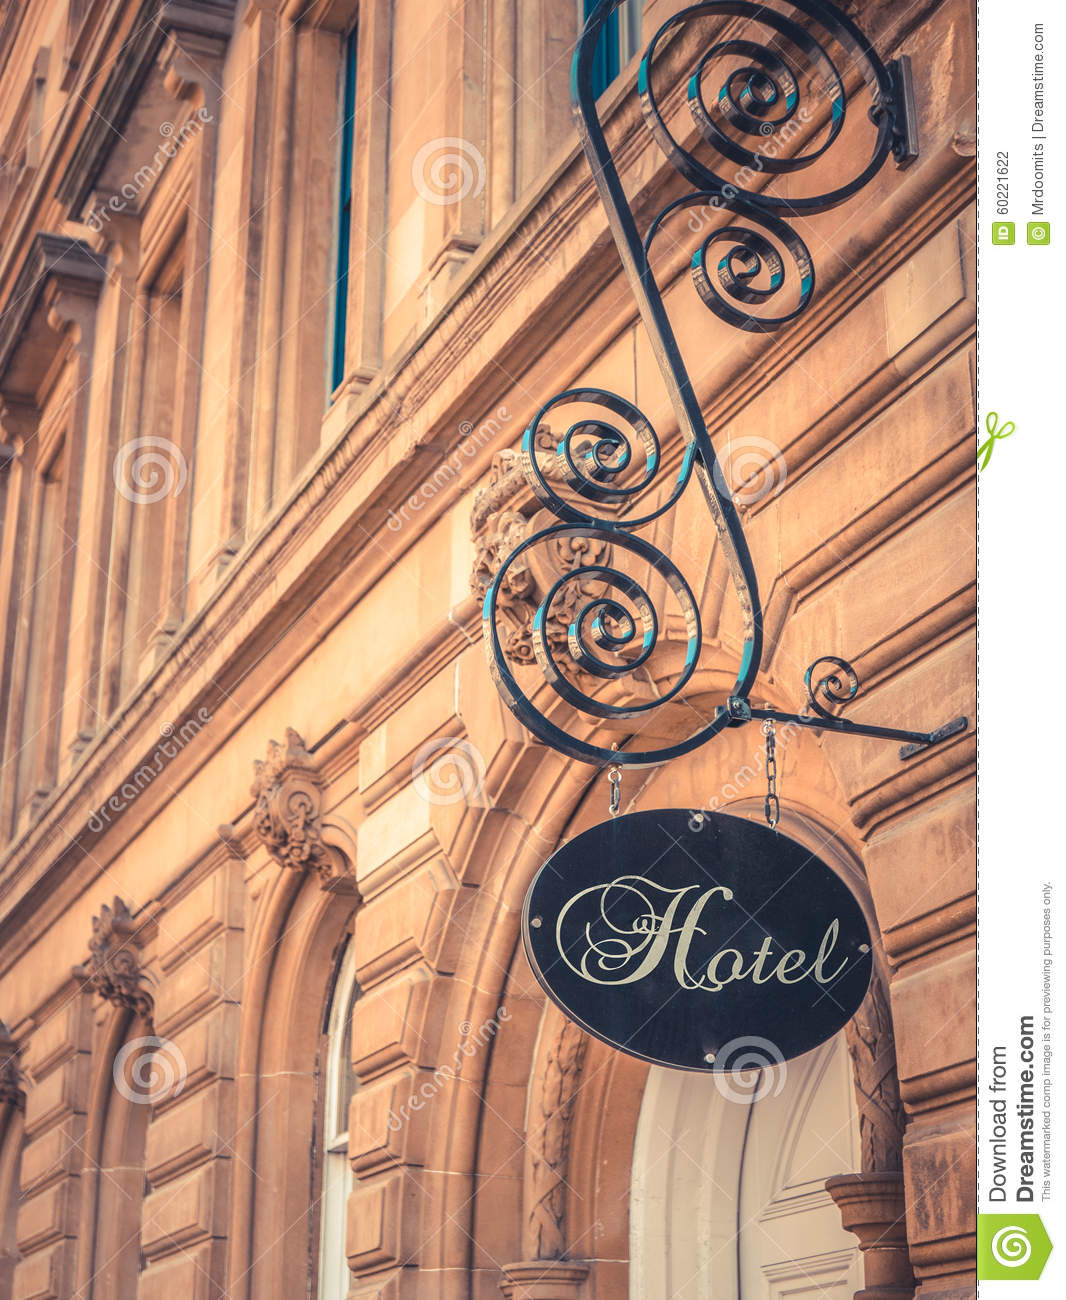 Utsmyckat lyxigt boutiquehotell